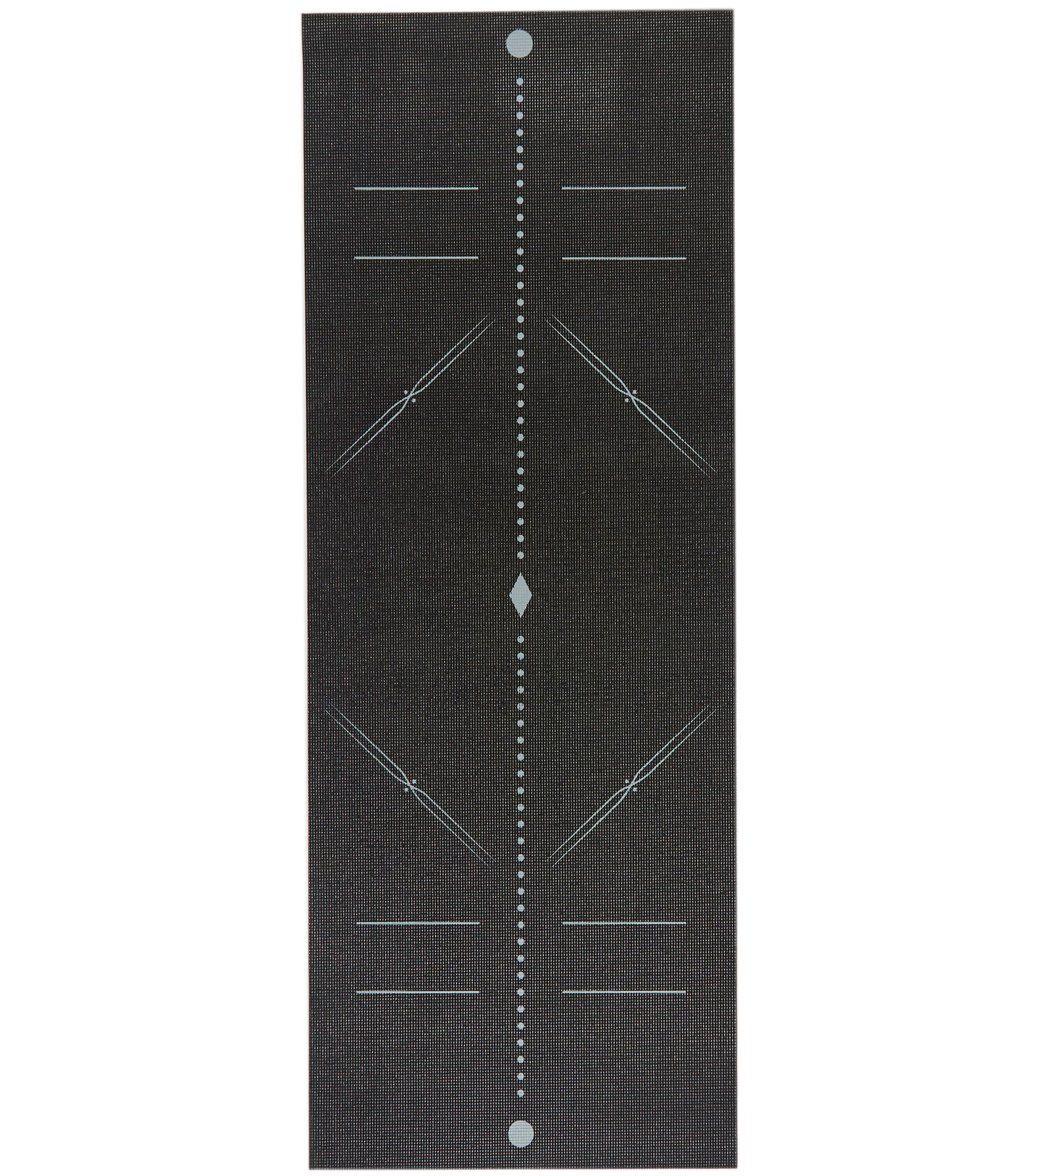 Everyday Yoga Alignment Yoga Mat 72 Inch 5mm At SwimOutlet.com